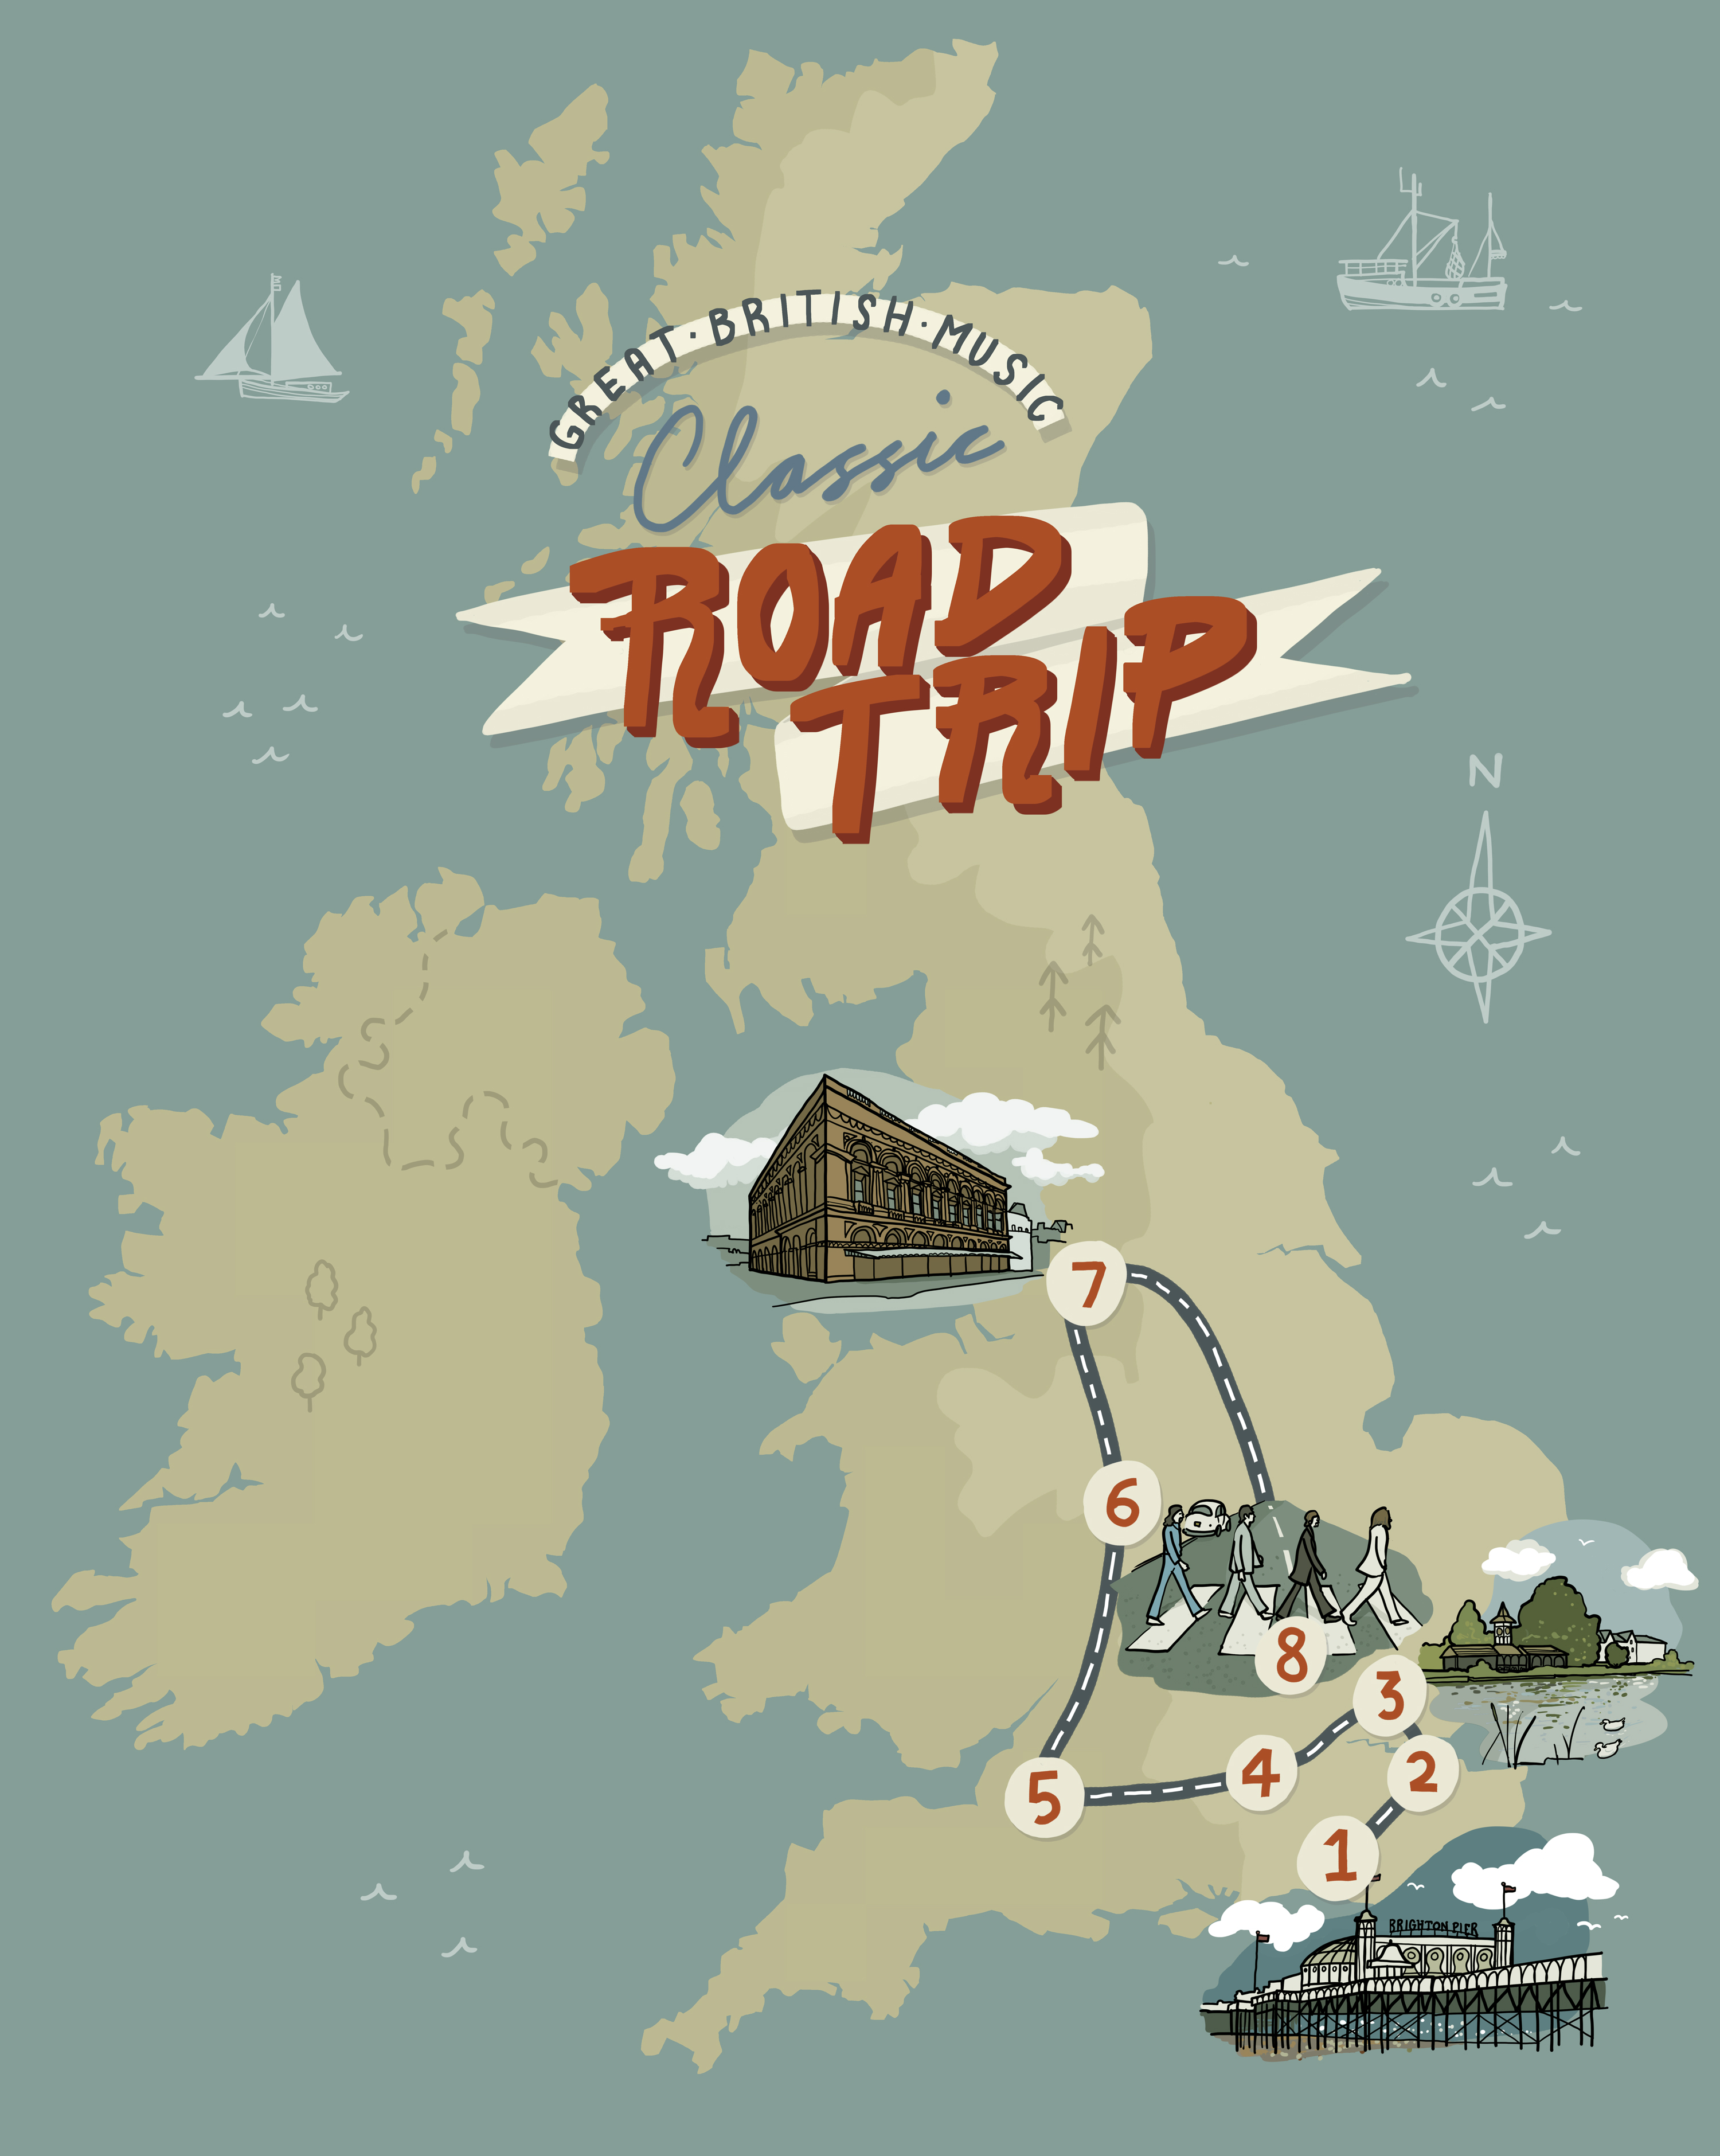 Classic Road Trip full UK map